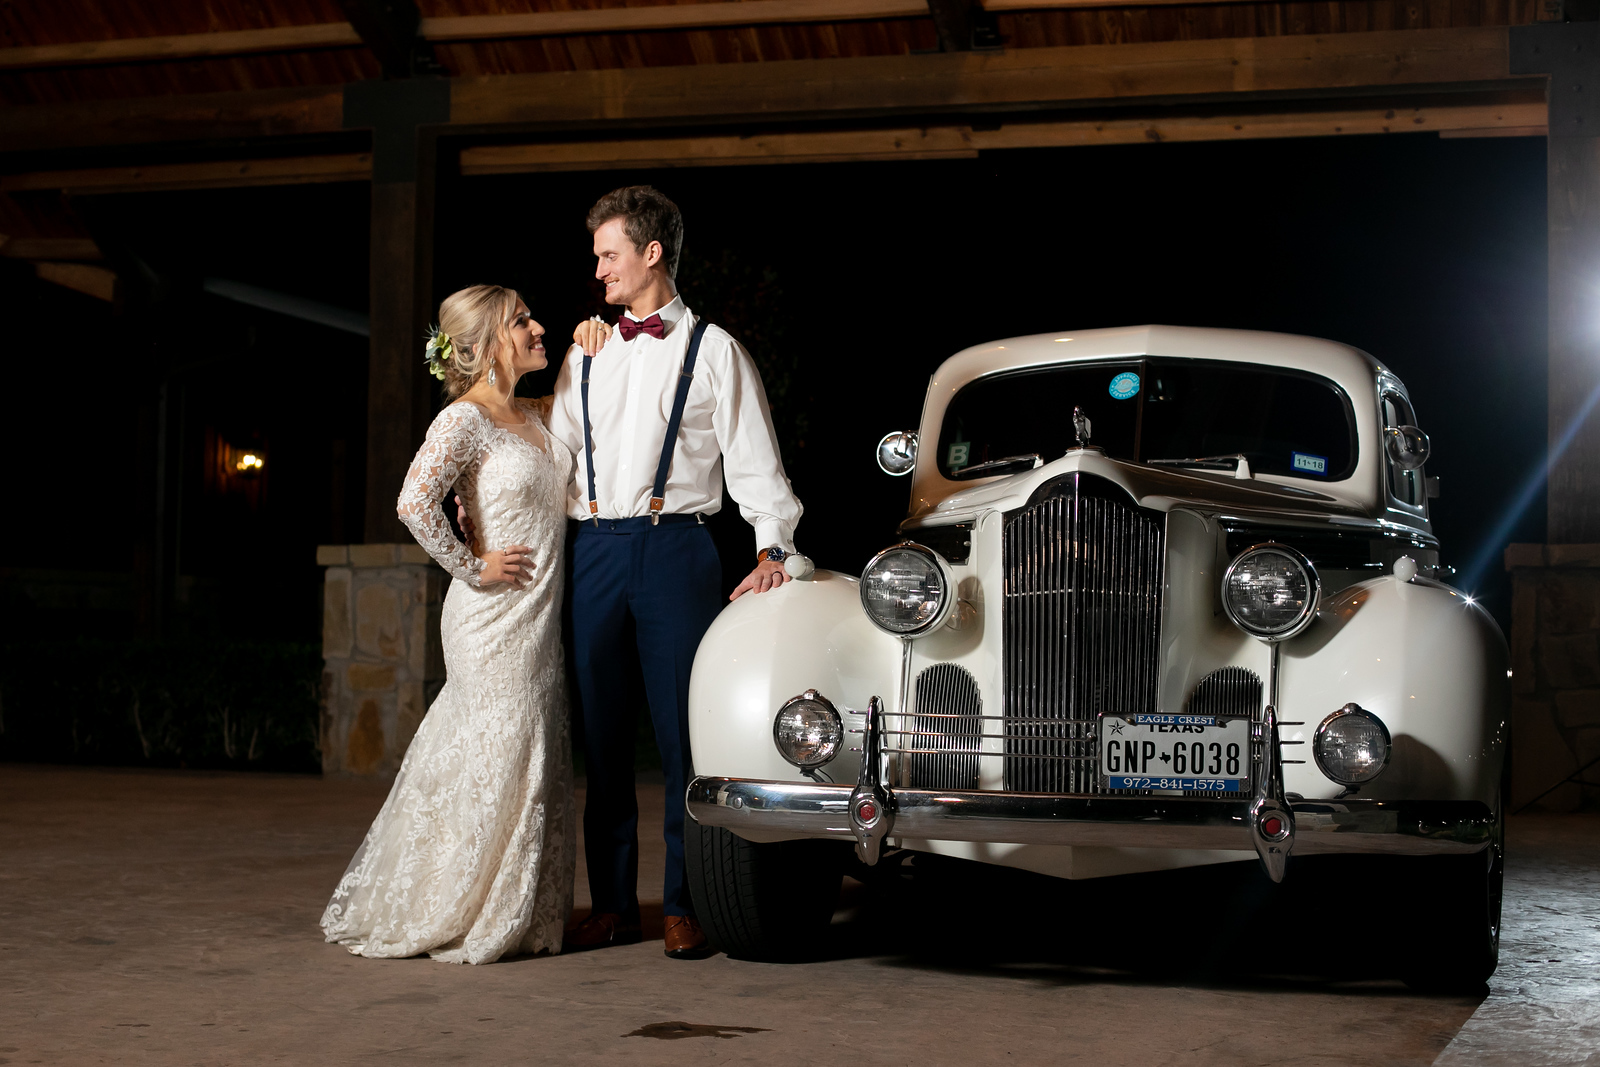 a newlywed couple standing next to a classic white car